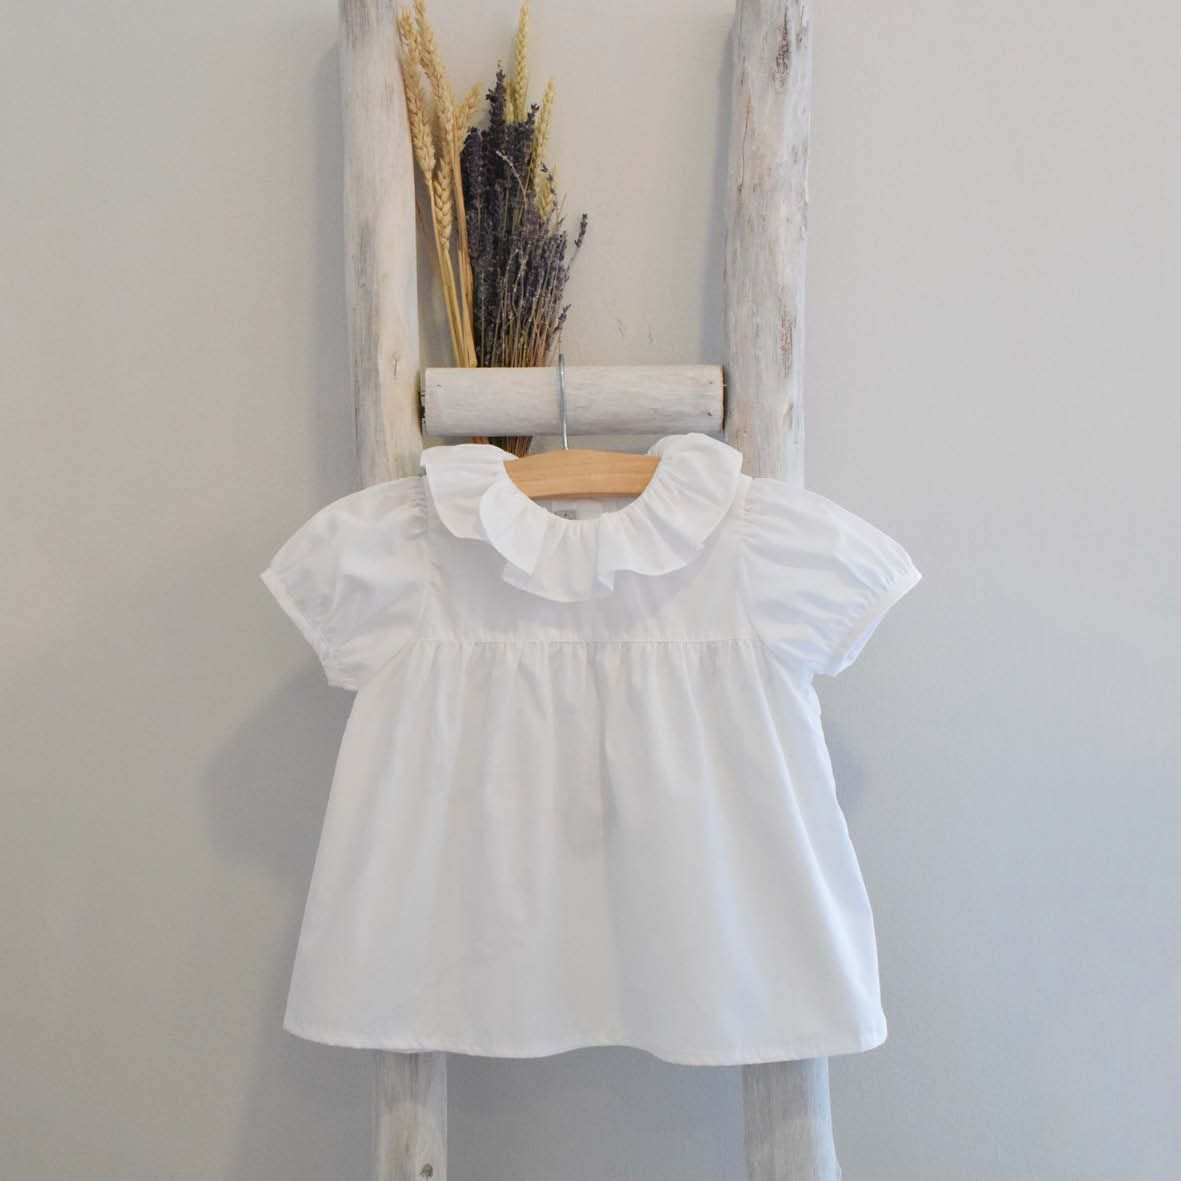 Pukatuka Short Sleeve White Ruffle Top